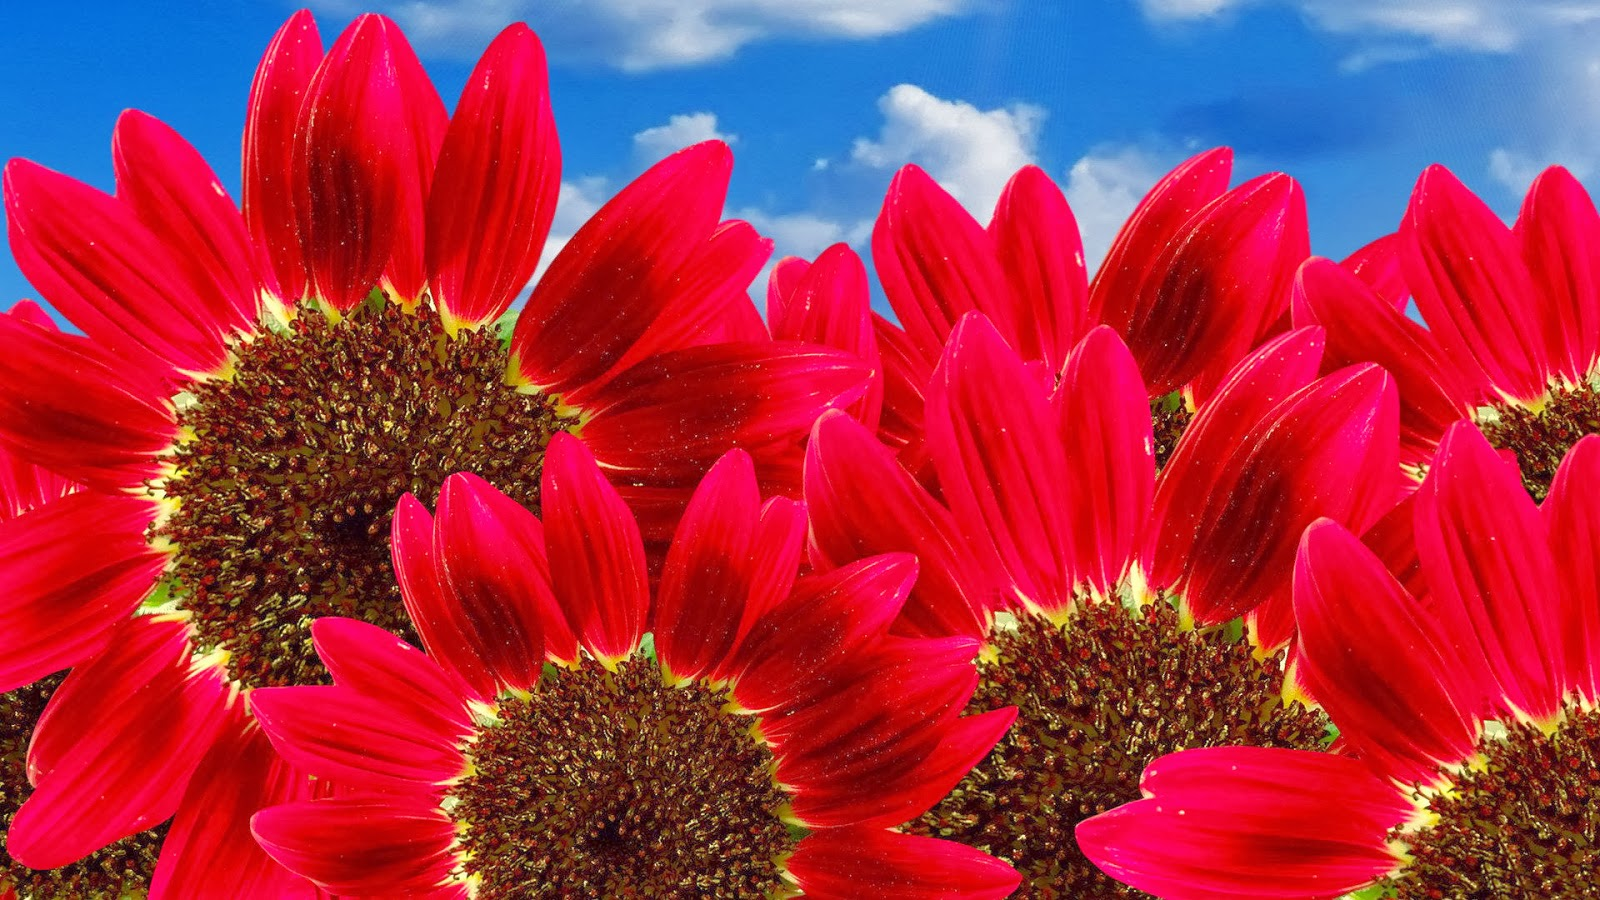 http://www.funmag.org/pictures-mag/flowers/beautiful-flowers-wallpapres/